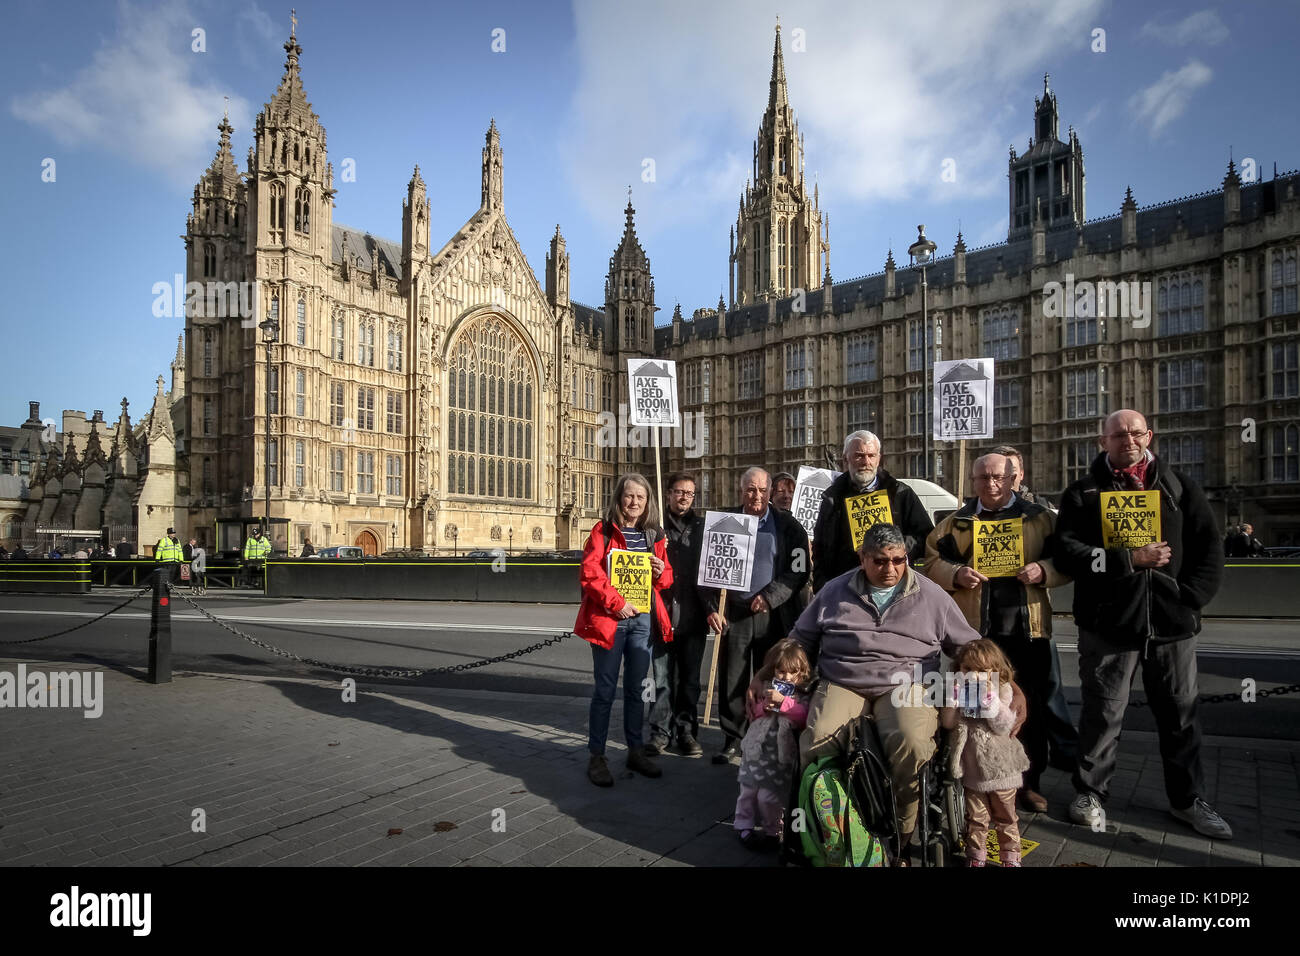 'Axe Bedroom Tax'. Anti-bedroom tax protesters demonstrate in Old Palace Yard opposite Westminster's Parliament Stock Photo